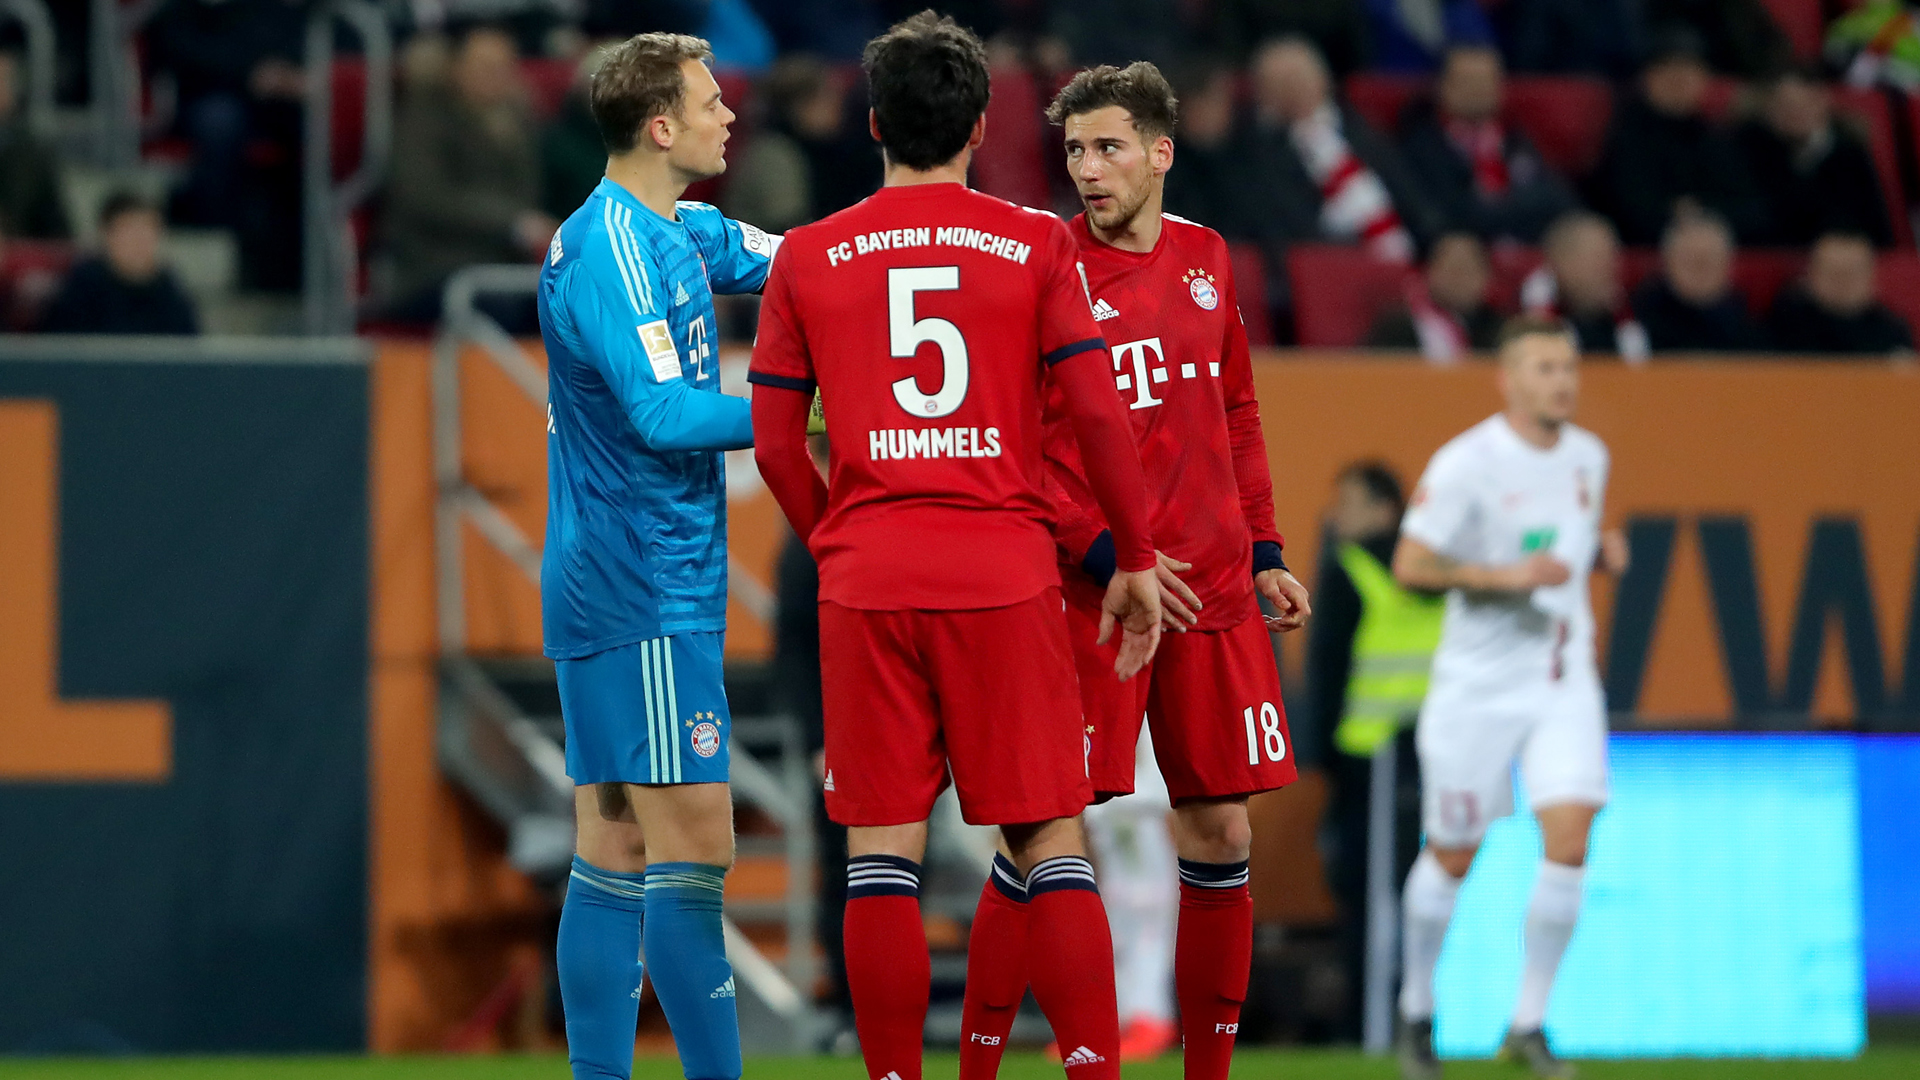 This can't happen at Liverpool – Kovac warns Bayern over defensive errors